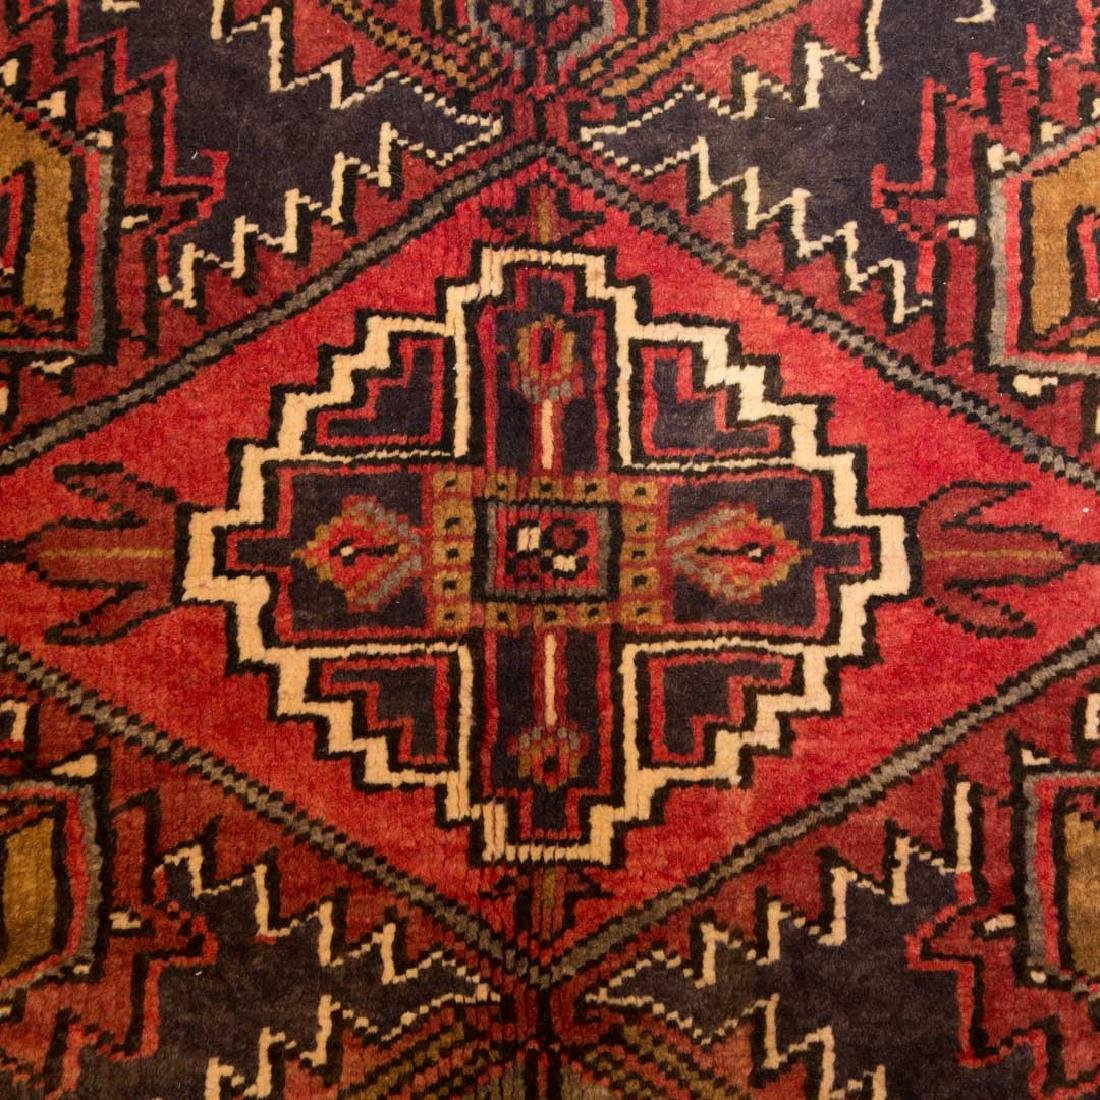 Persian Herez rug, approx. 7.4 x 9.9 - 5